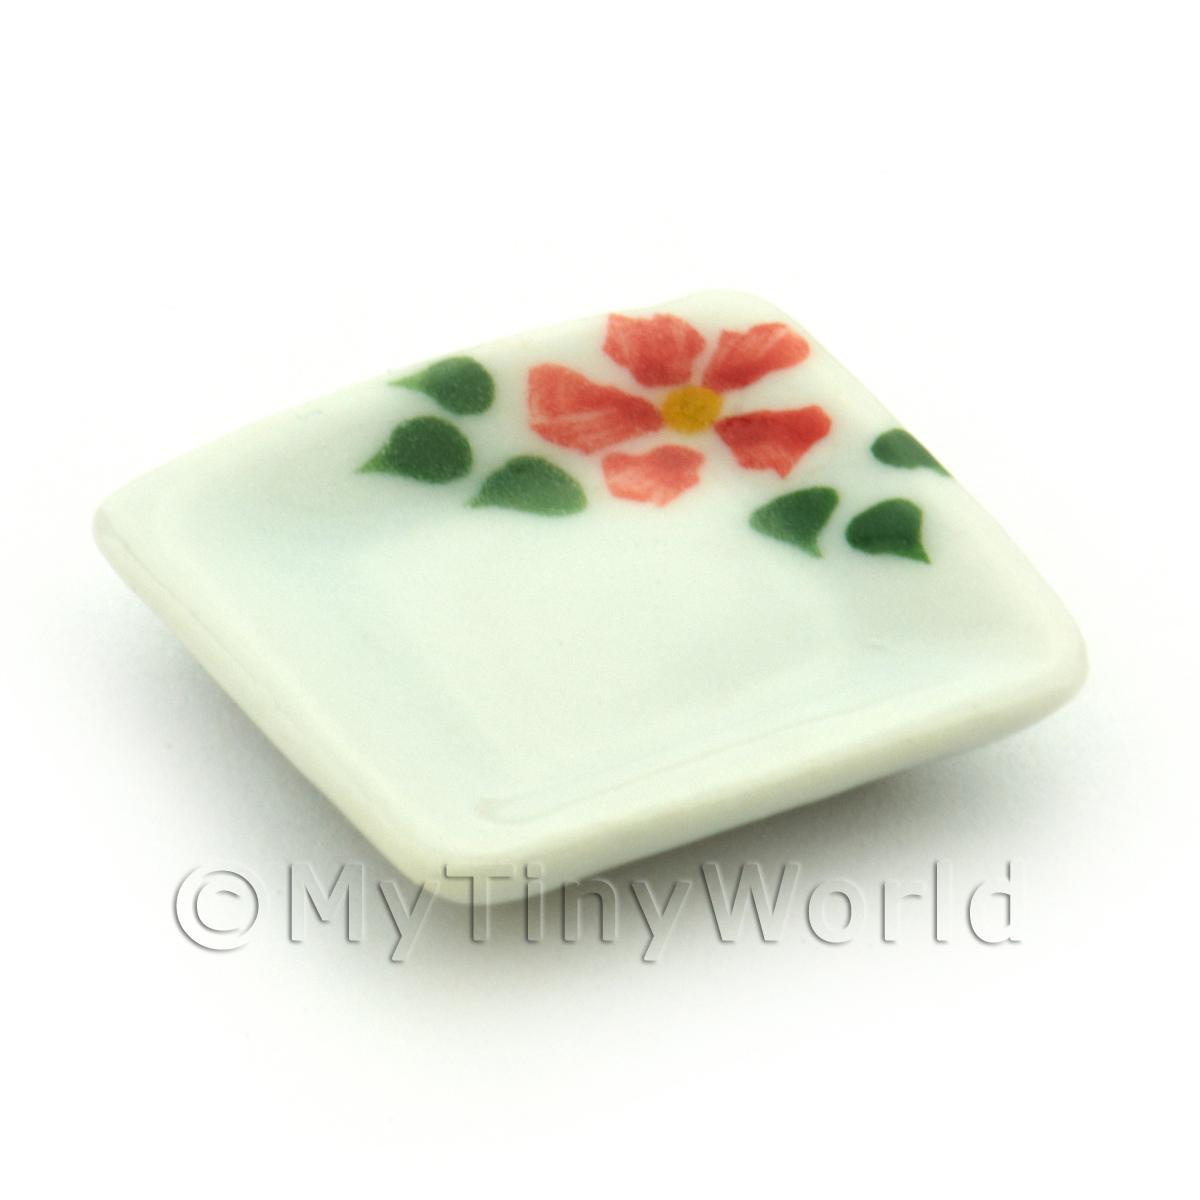 Dolls House Miniature Hibiscus Design Ceramic 21mm Square Plate